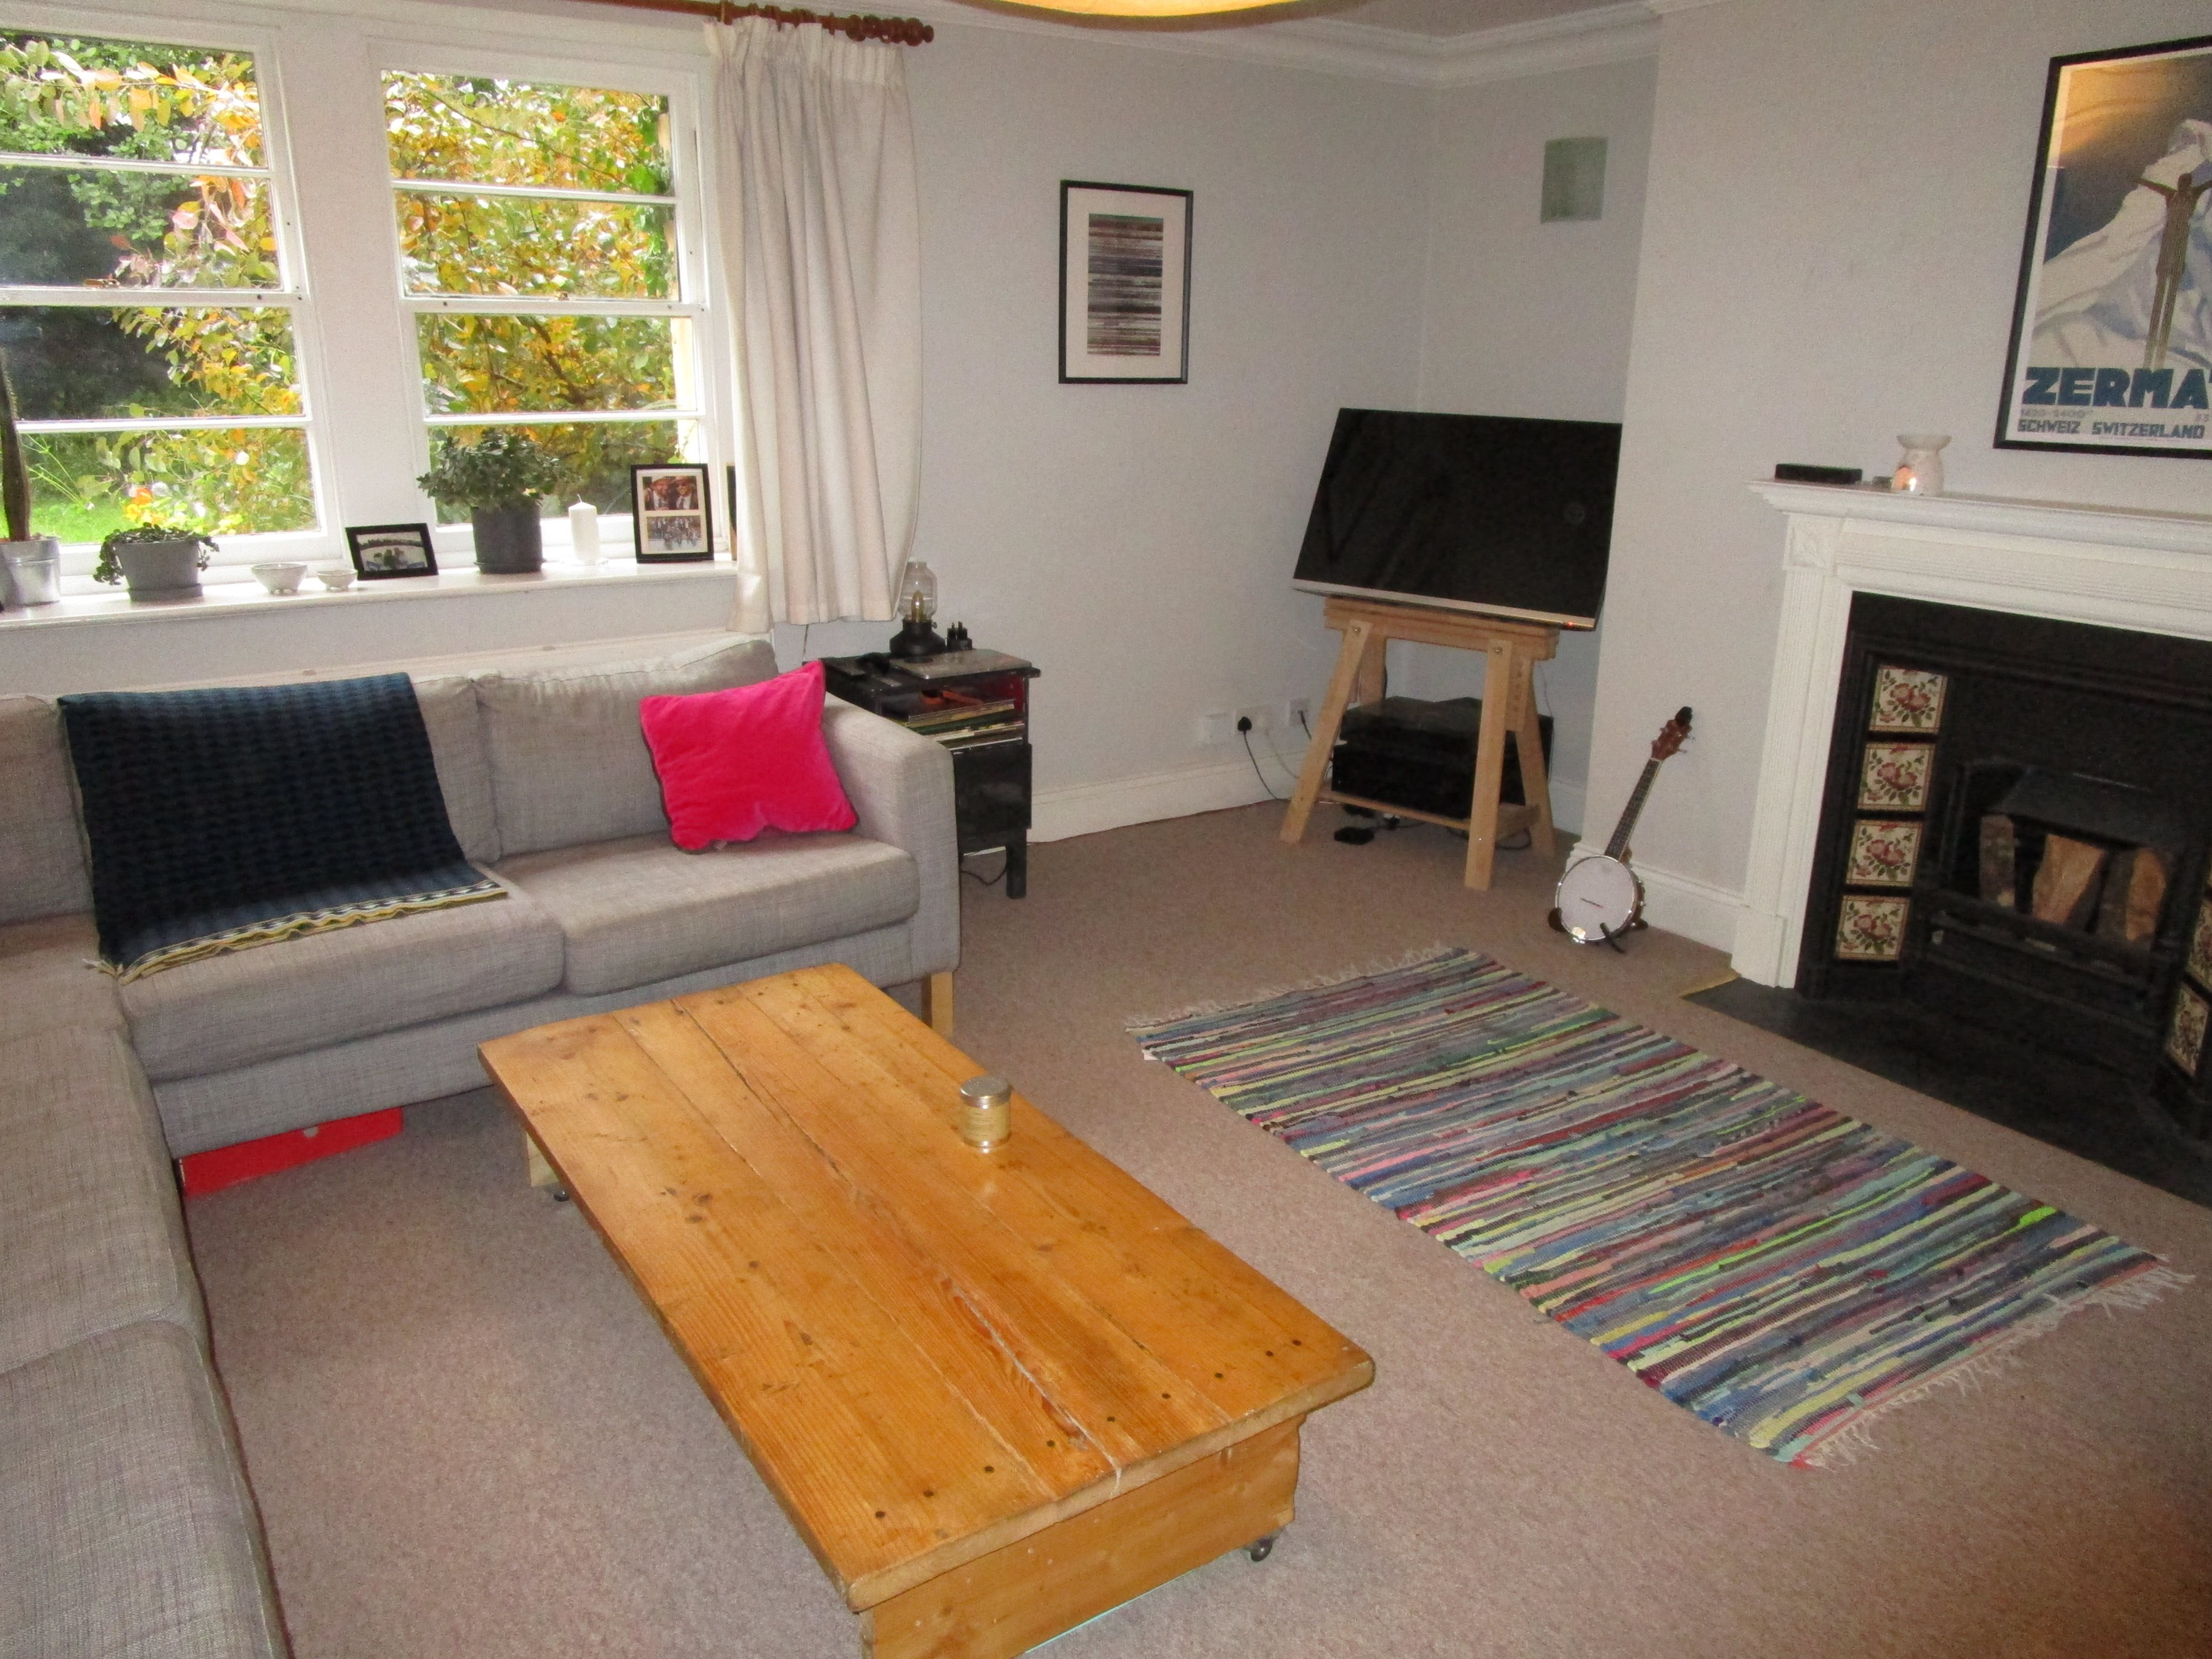 1 bed flat to rent in Westfield Park, Redland, BS6